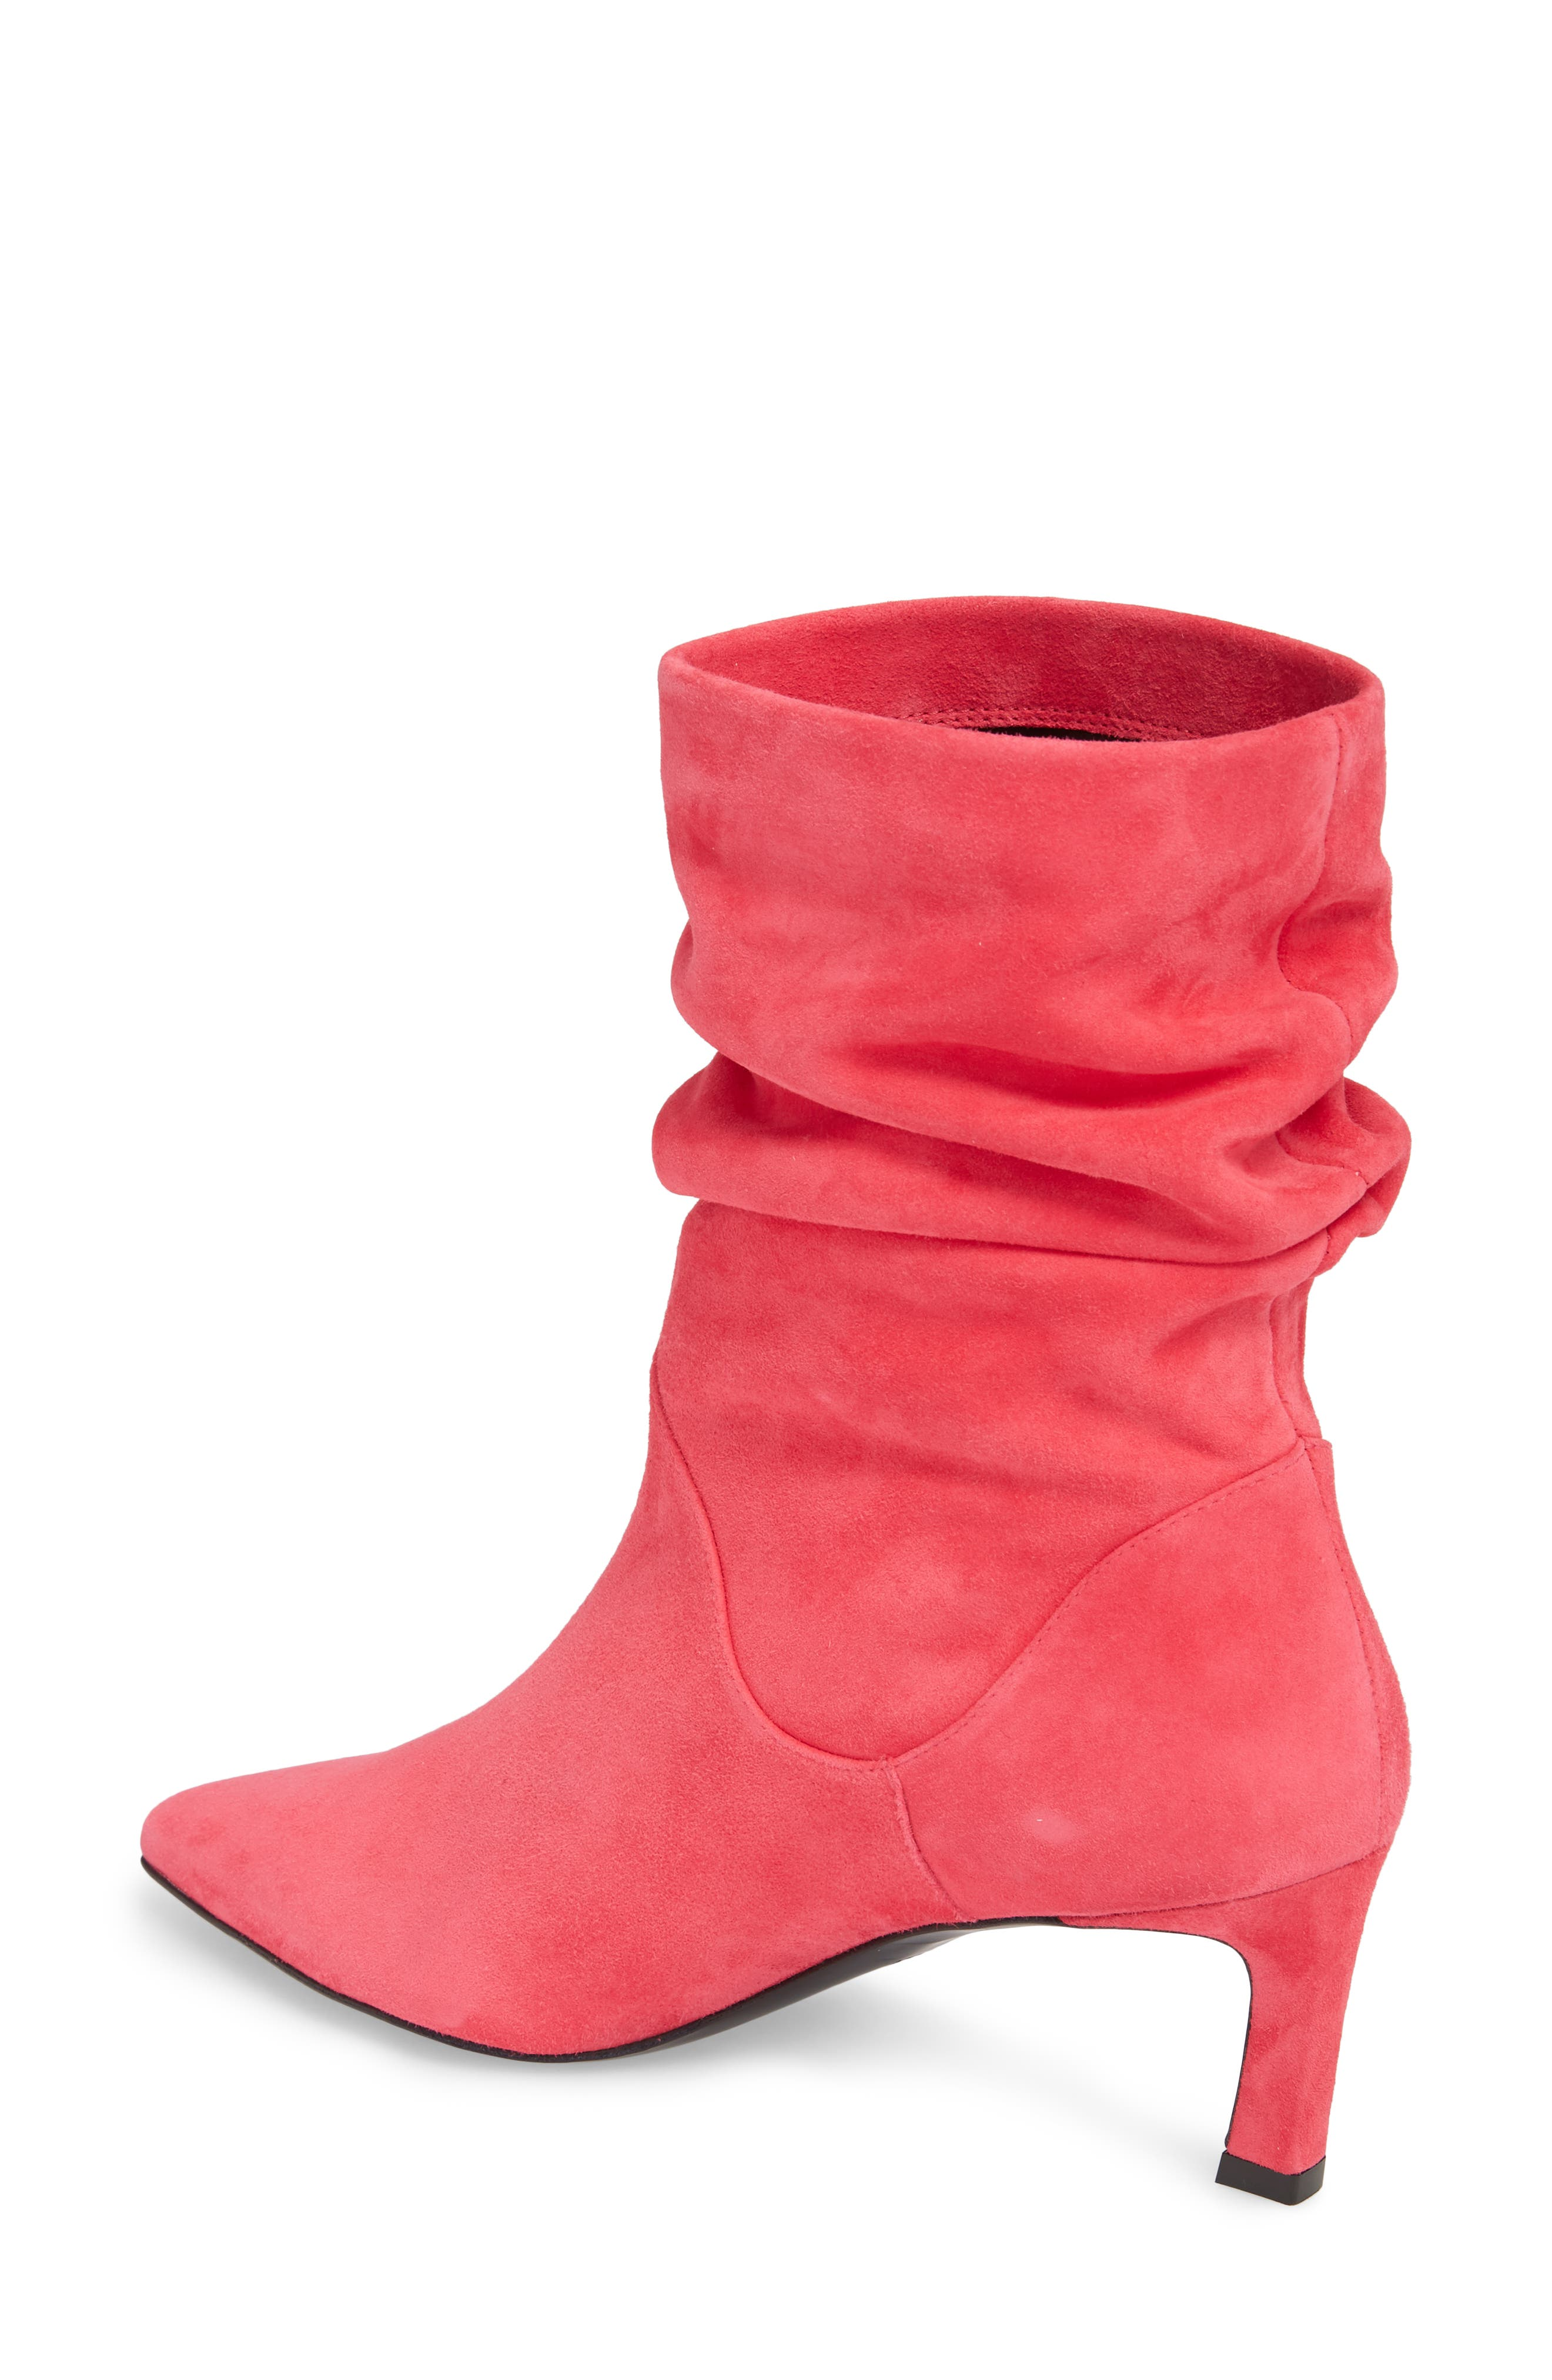 Demibenatar Slouch Bootie,                             Alternate thumbnail 2, color,                             Coral Luxe Suede